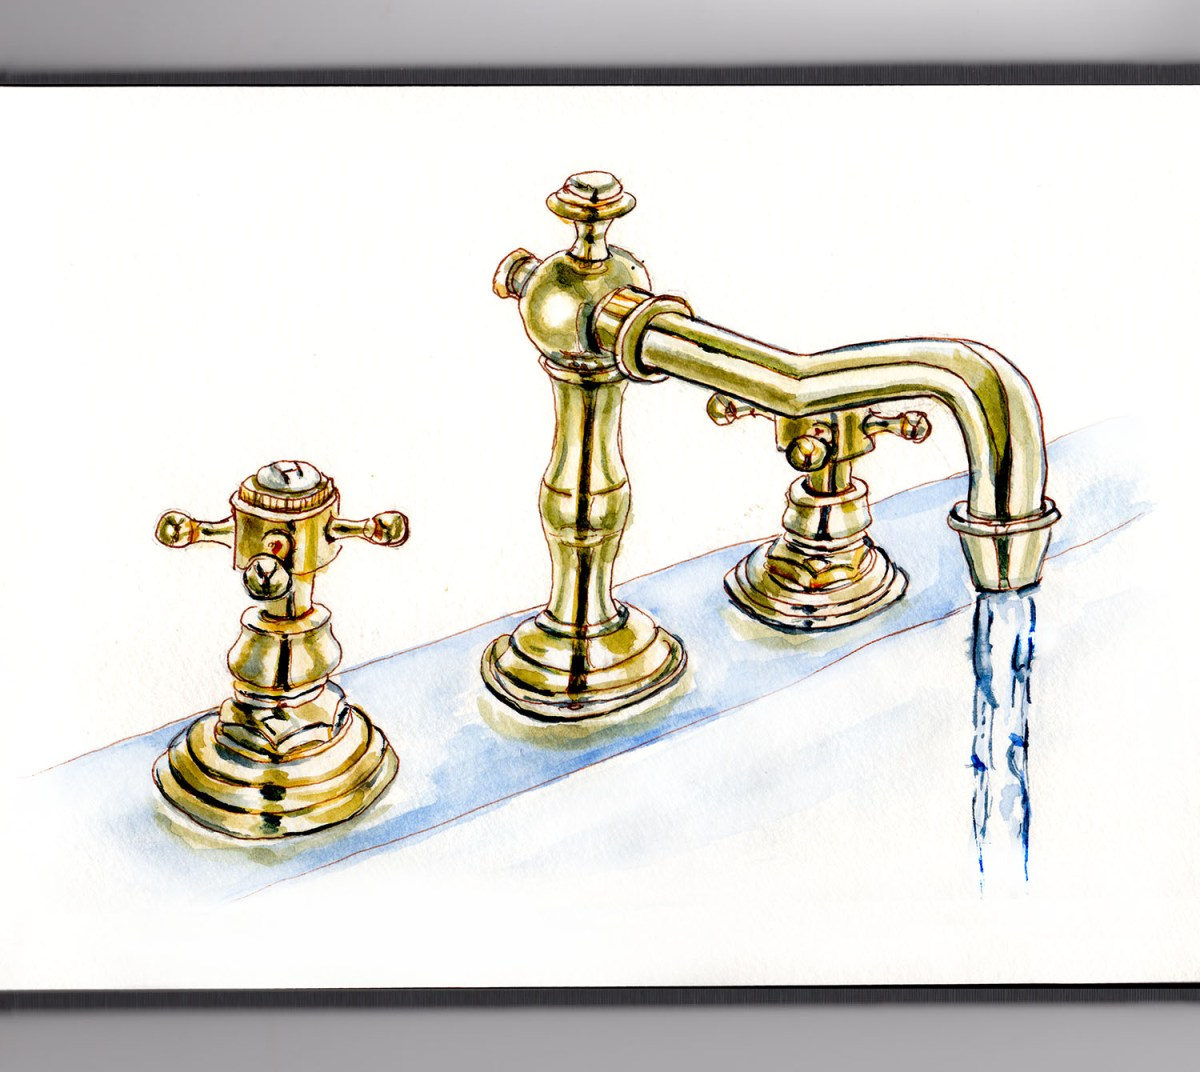 #WorldWatercolorGroup - Day 6 - A Long Hot Bath - Bathroom Faucet - Doodlewash